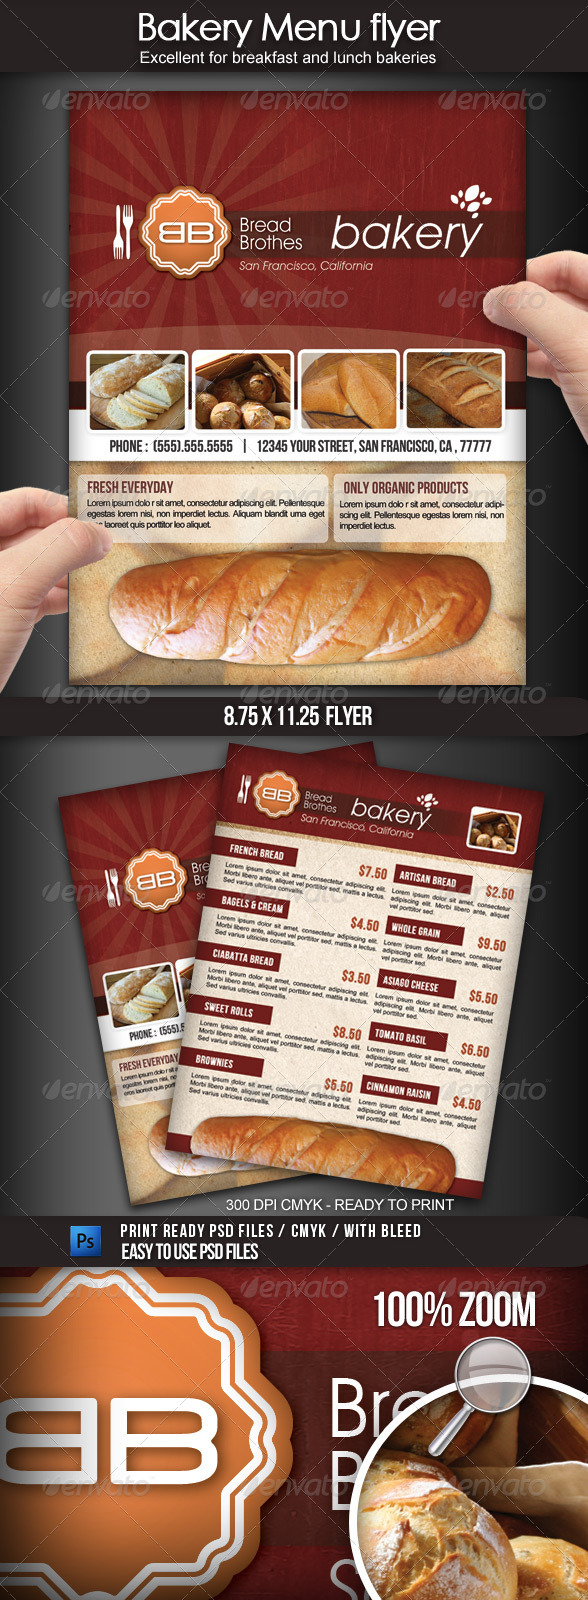 Graphic River Bakery Menu Flyer Print Templates -  Flyers 1715173